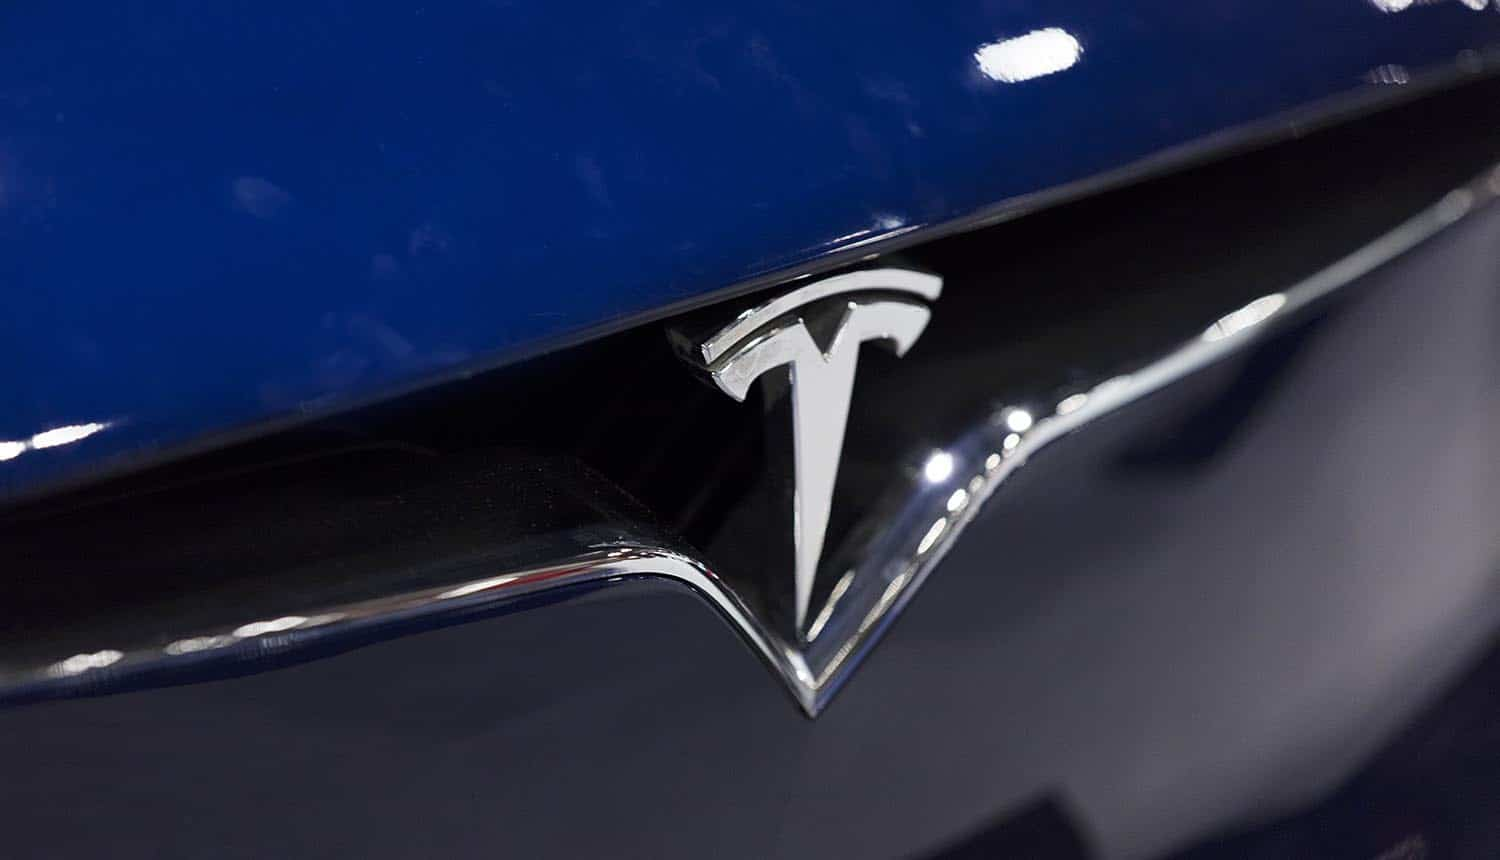 Close up of a Tesla car badge showing Russian hacker's plan for ransomware attack